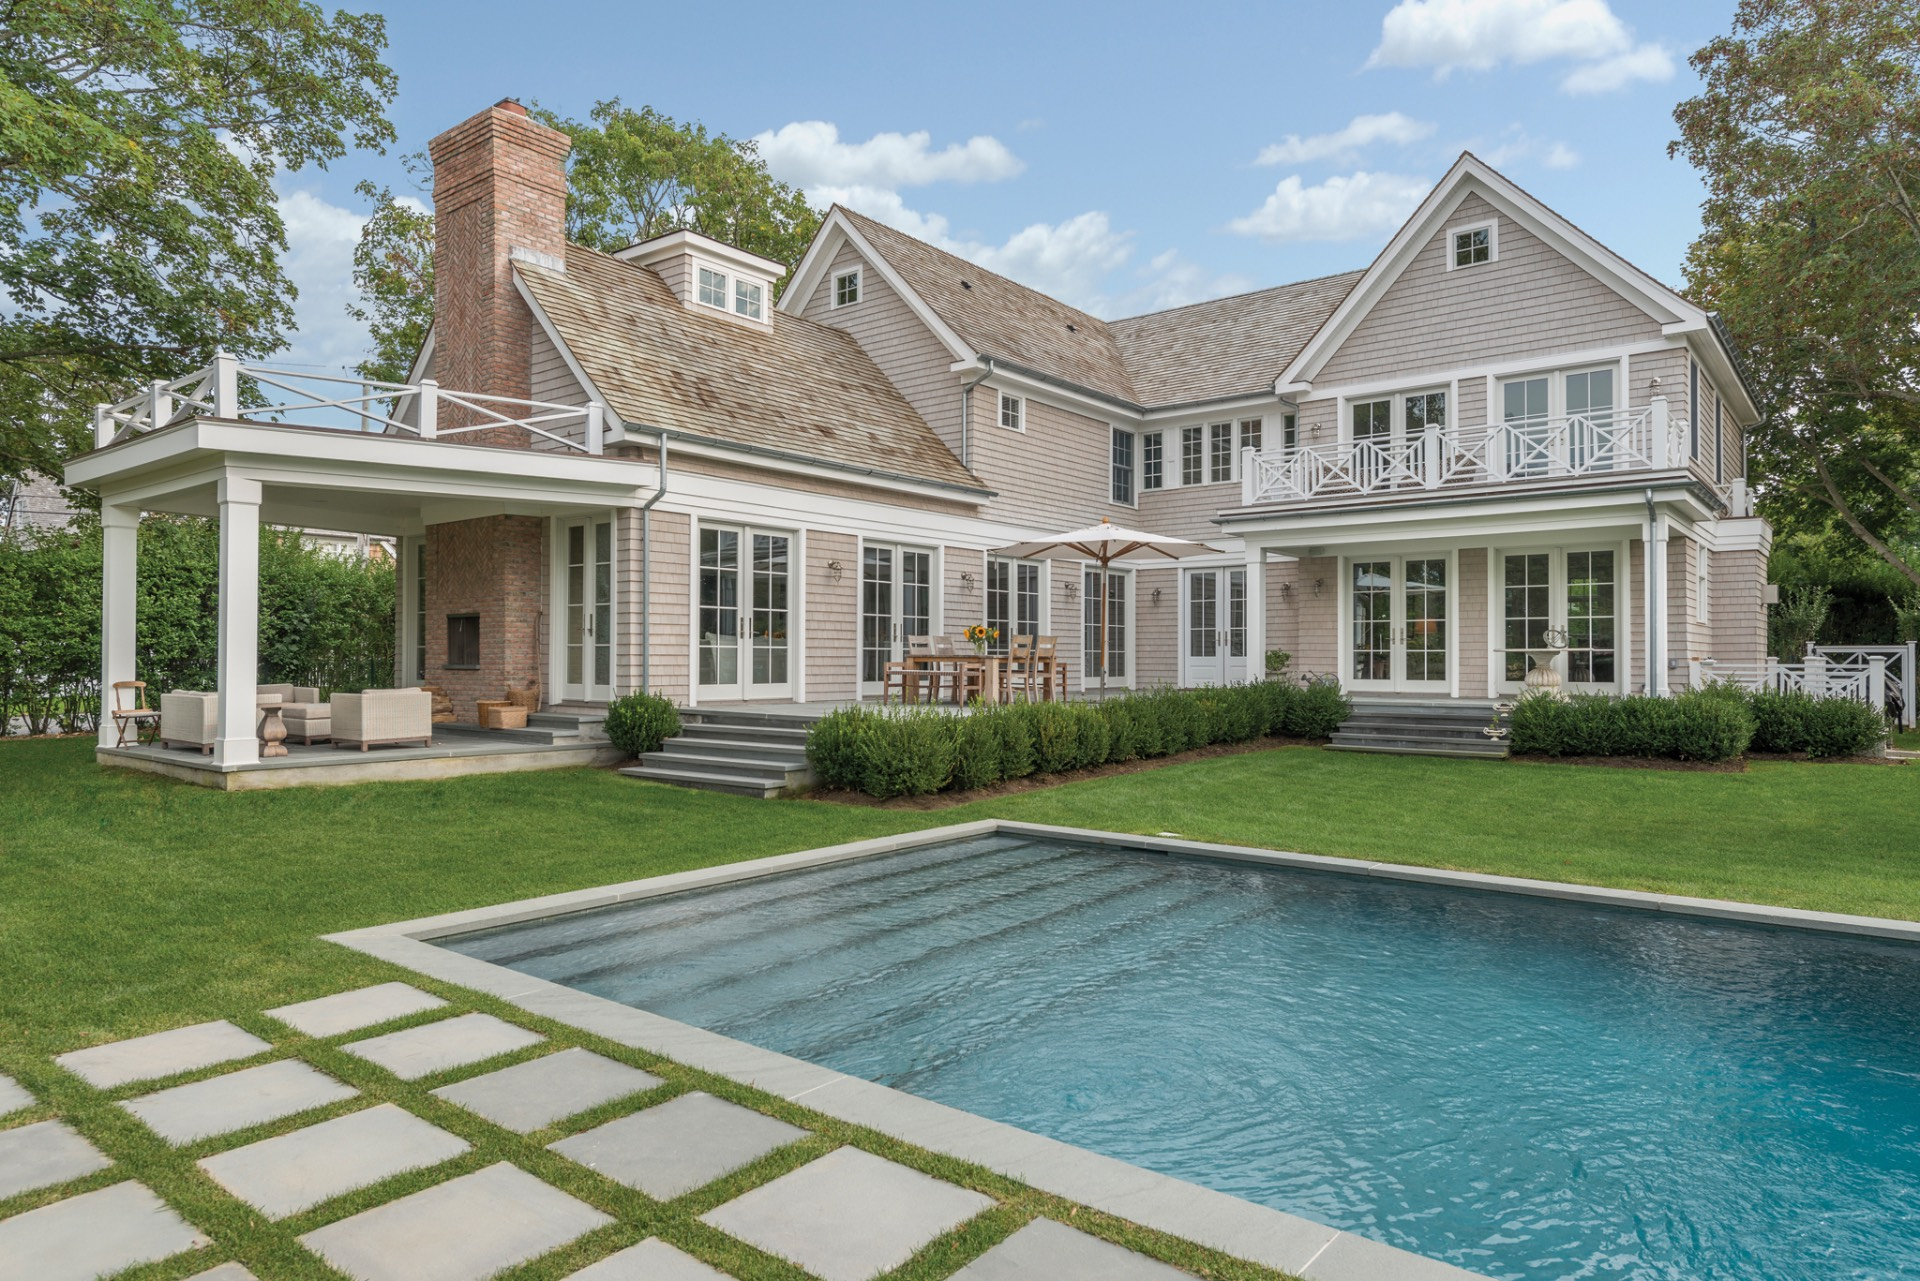 Casa Unifamiliar por un Alquiler en Brand New And Ready For You Bridgehampton, Nueva York